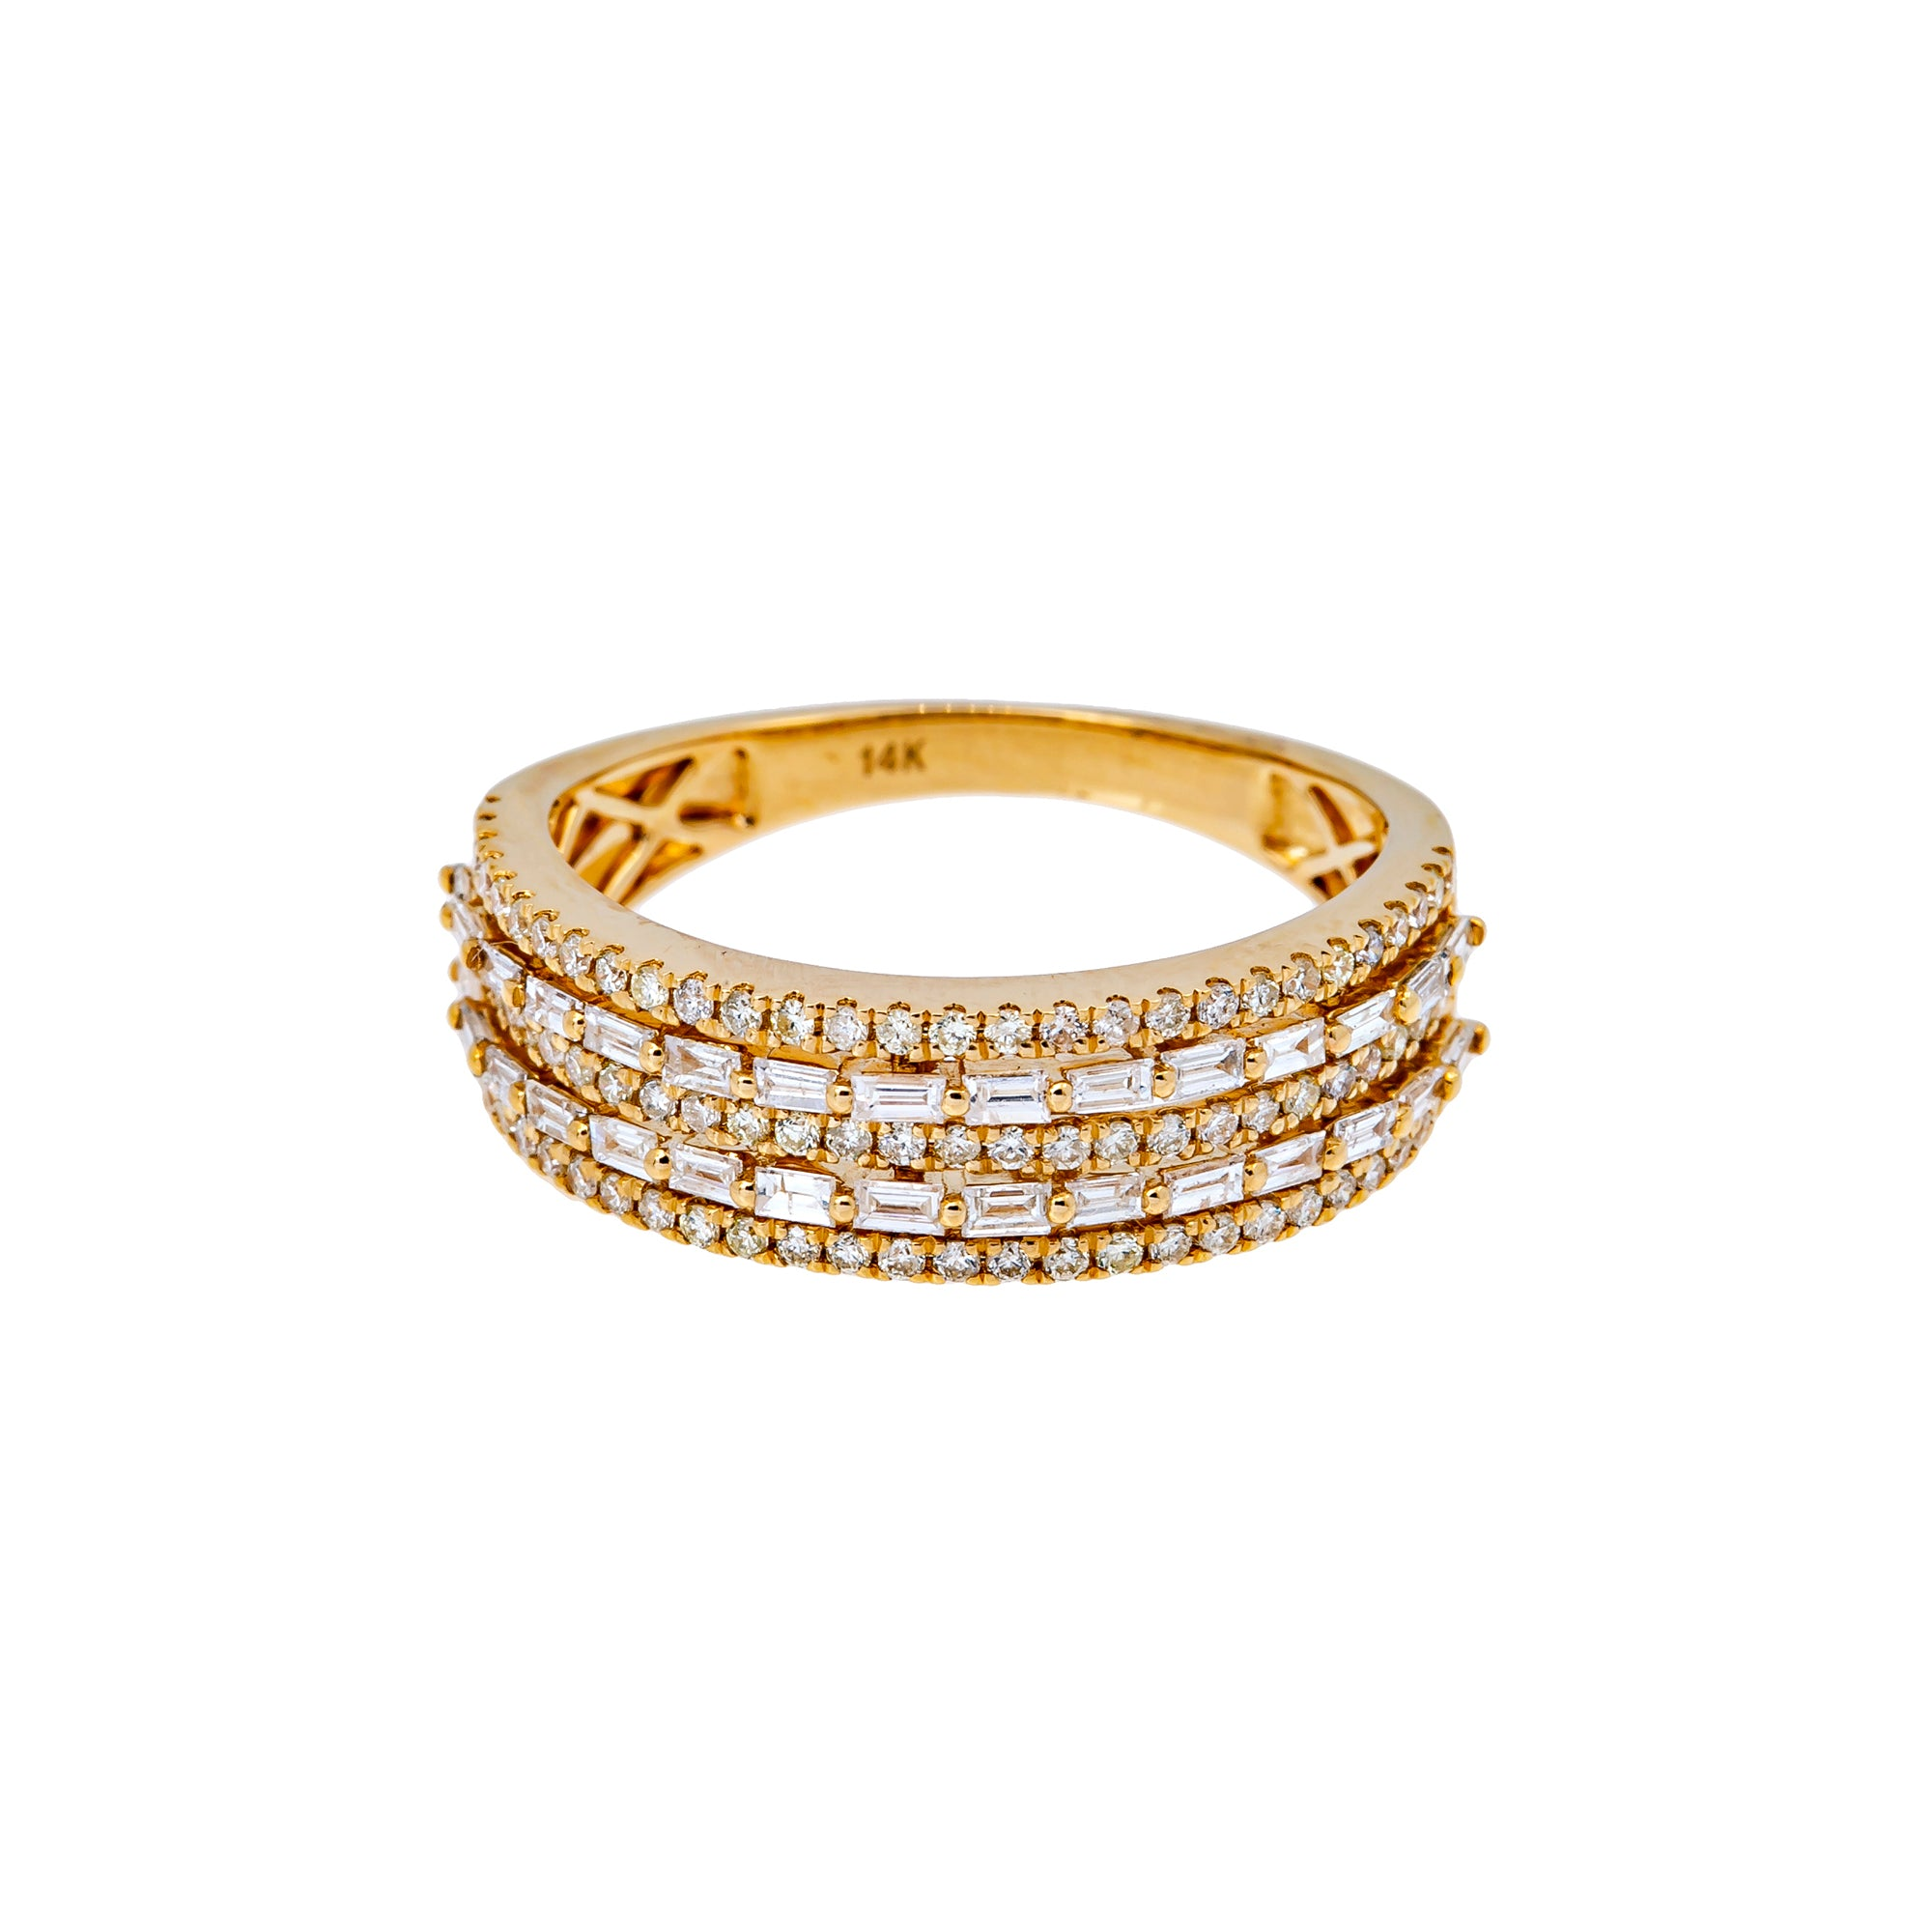 14K YELLOW GOLD MEN'S RING WITH 1.12 CT  DIAMONDS